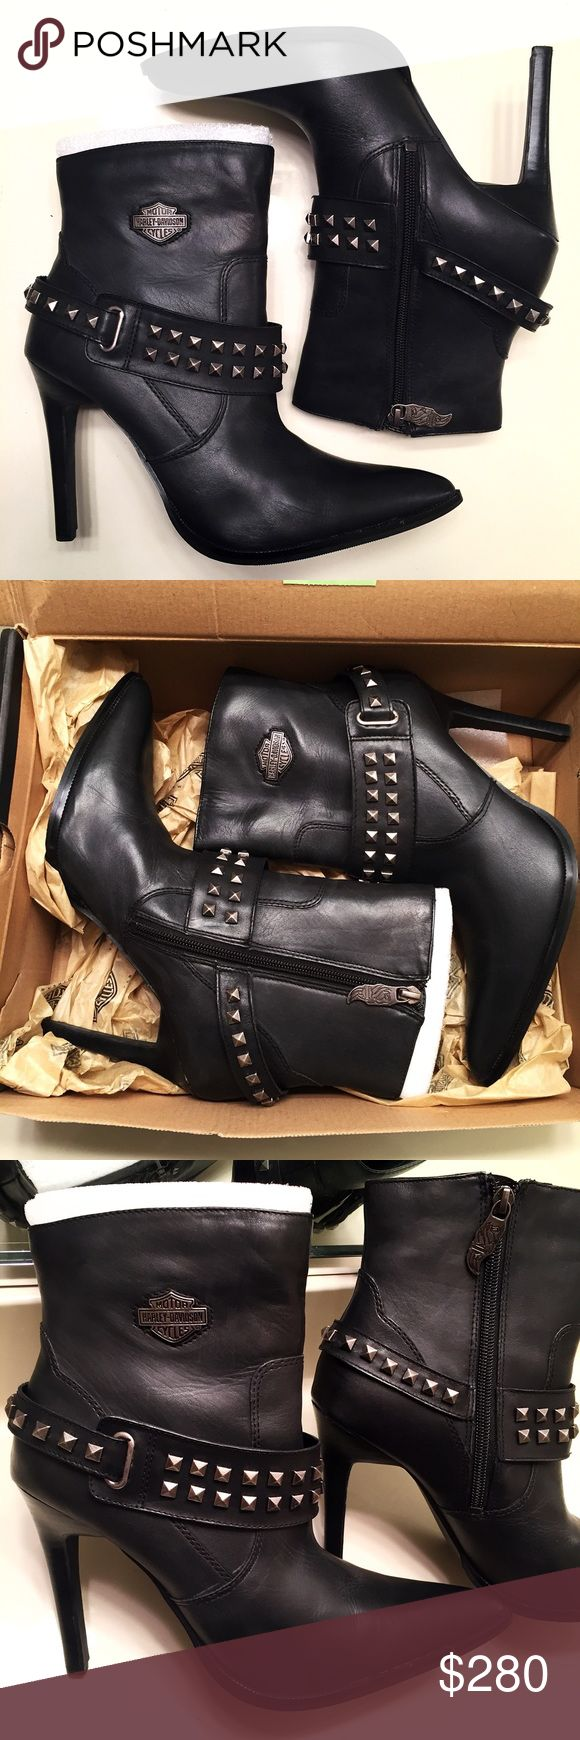 NEW Harley Davidson black leather heels size 9 Brand new, never worn, still with tags and come in original box. Black genuine leather Harley-Davidson pumps with metal studded buckles and size zippers. Women's size 9. These heeled boots are no joke!! Incredibly sexy style Harley-Davidson Shoes Heeled Boots